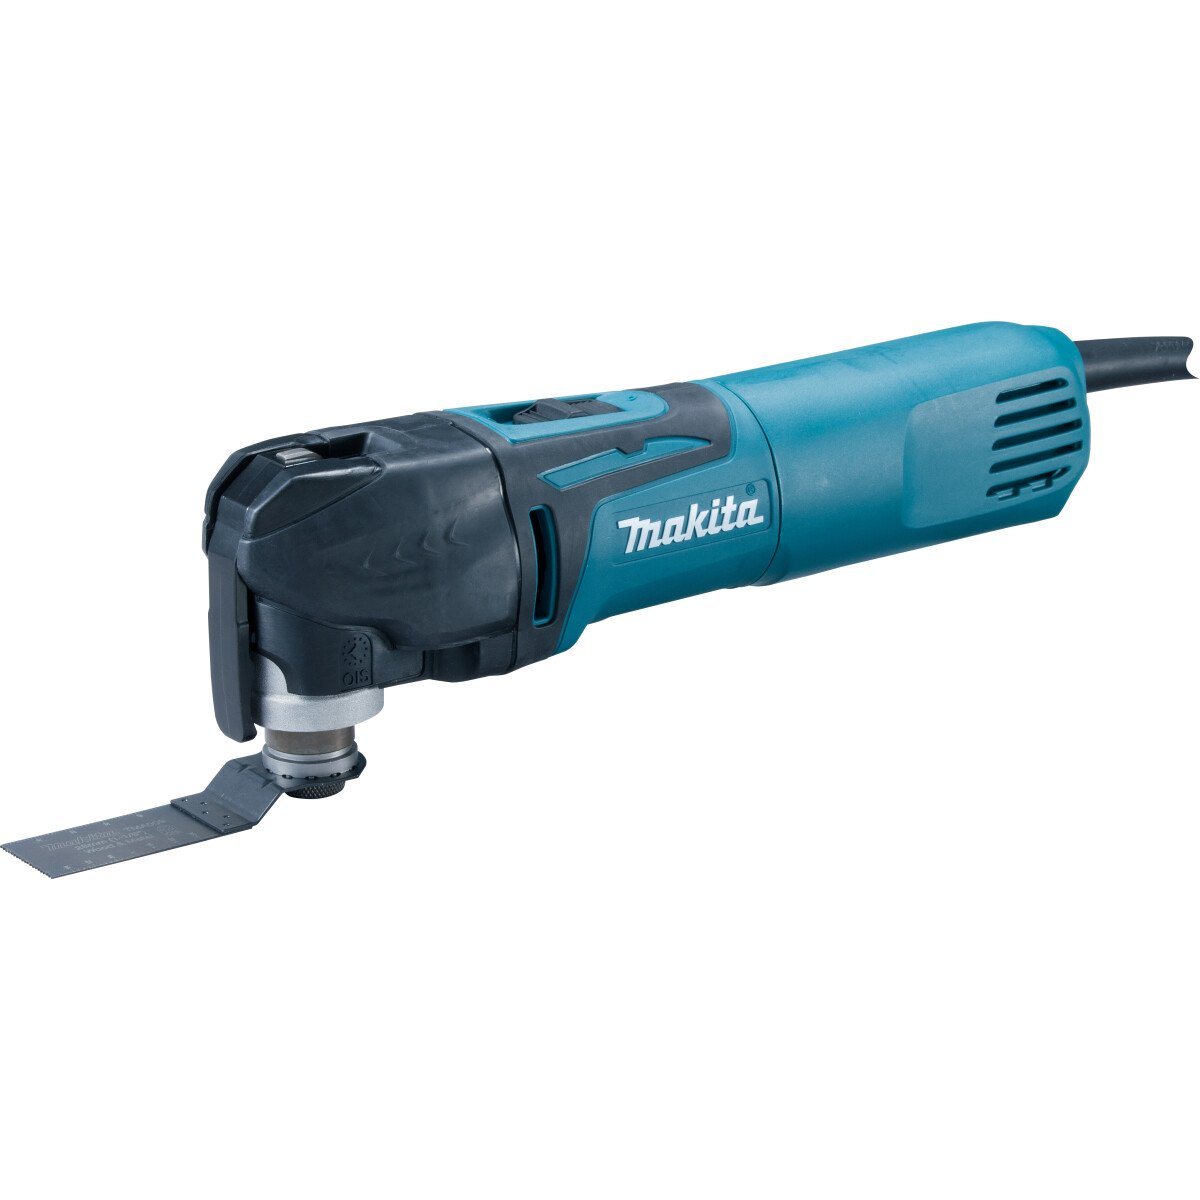 Makita TM3010CK 110V Multi Tool with Tool-less Accessory Fitting